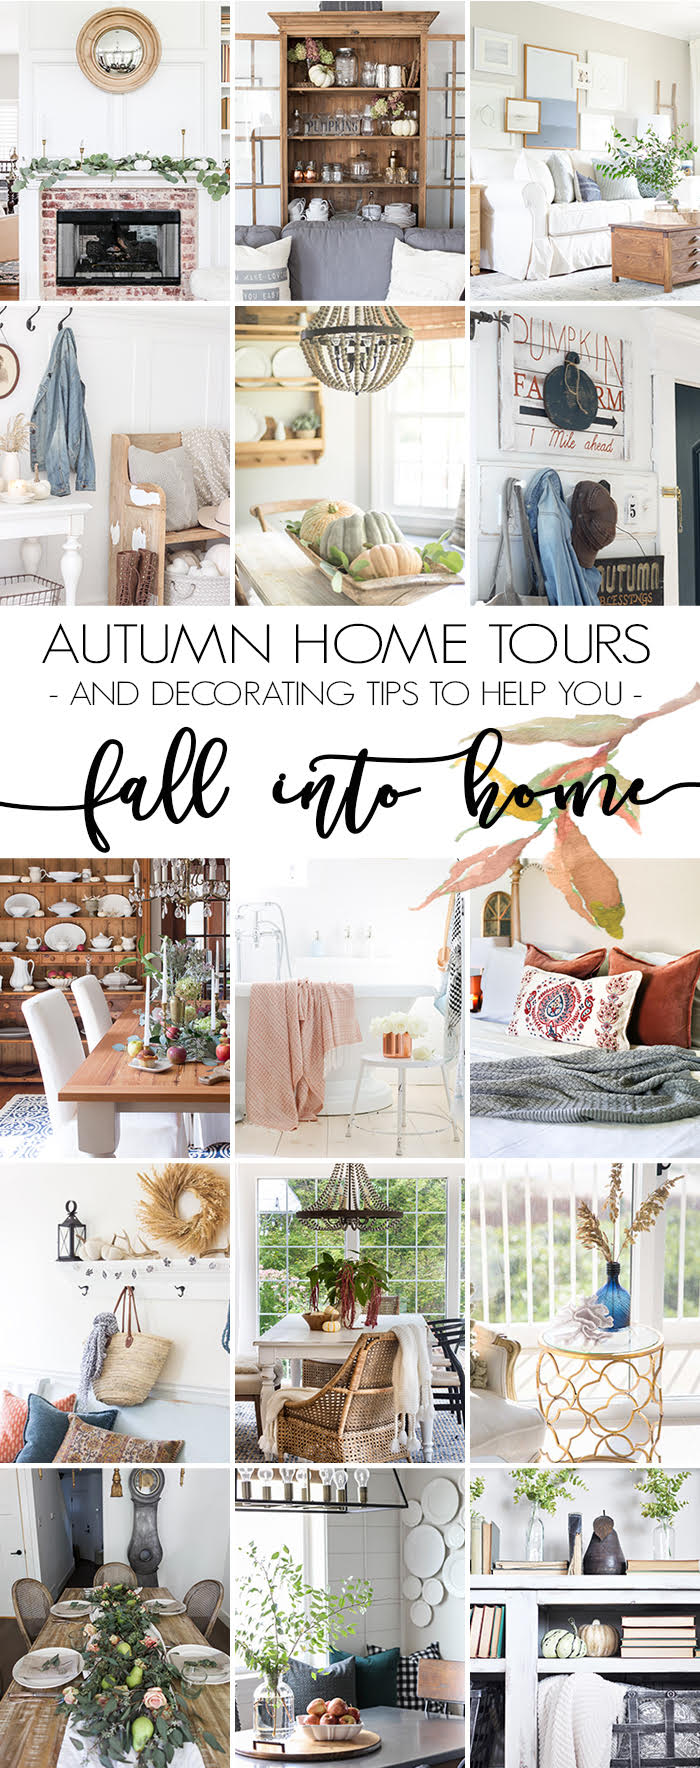 Fall Into Home Tours